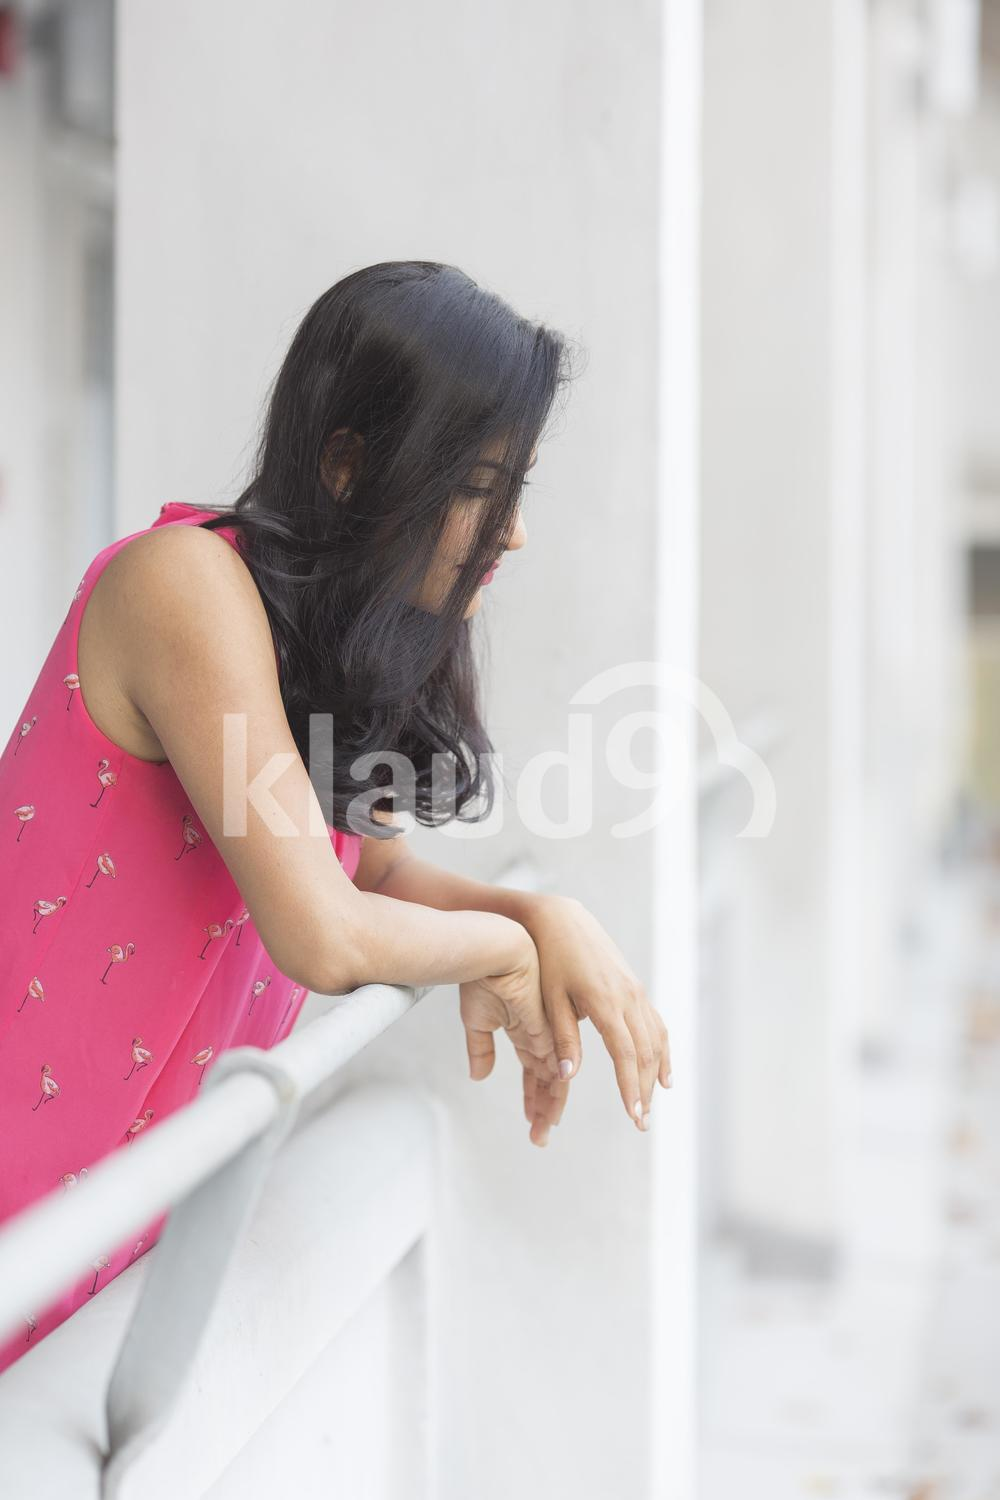 Young Indian woman looking down